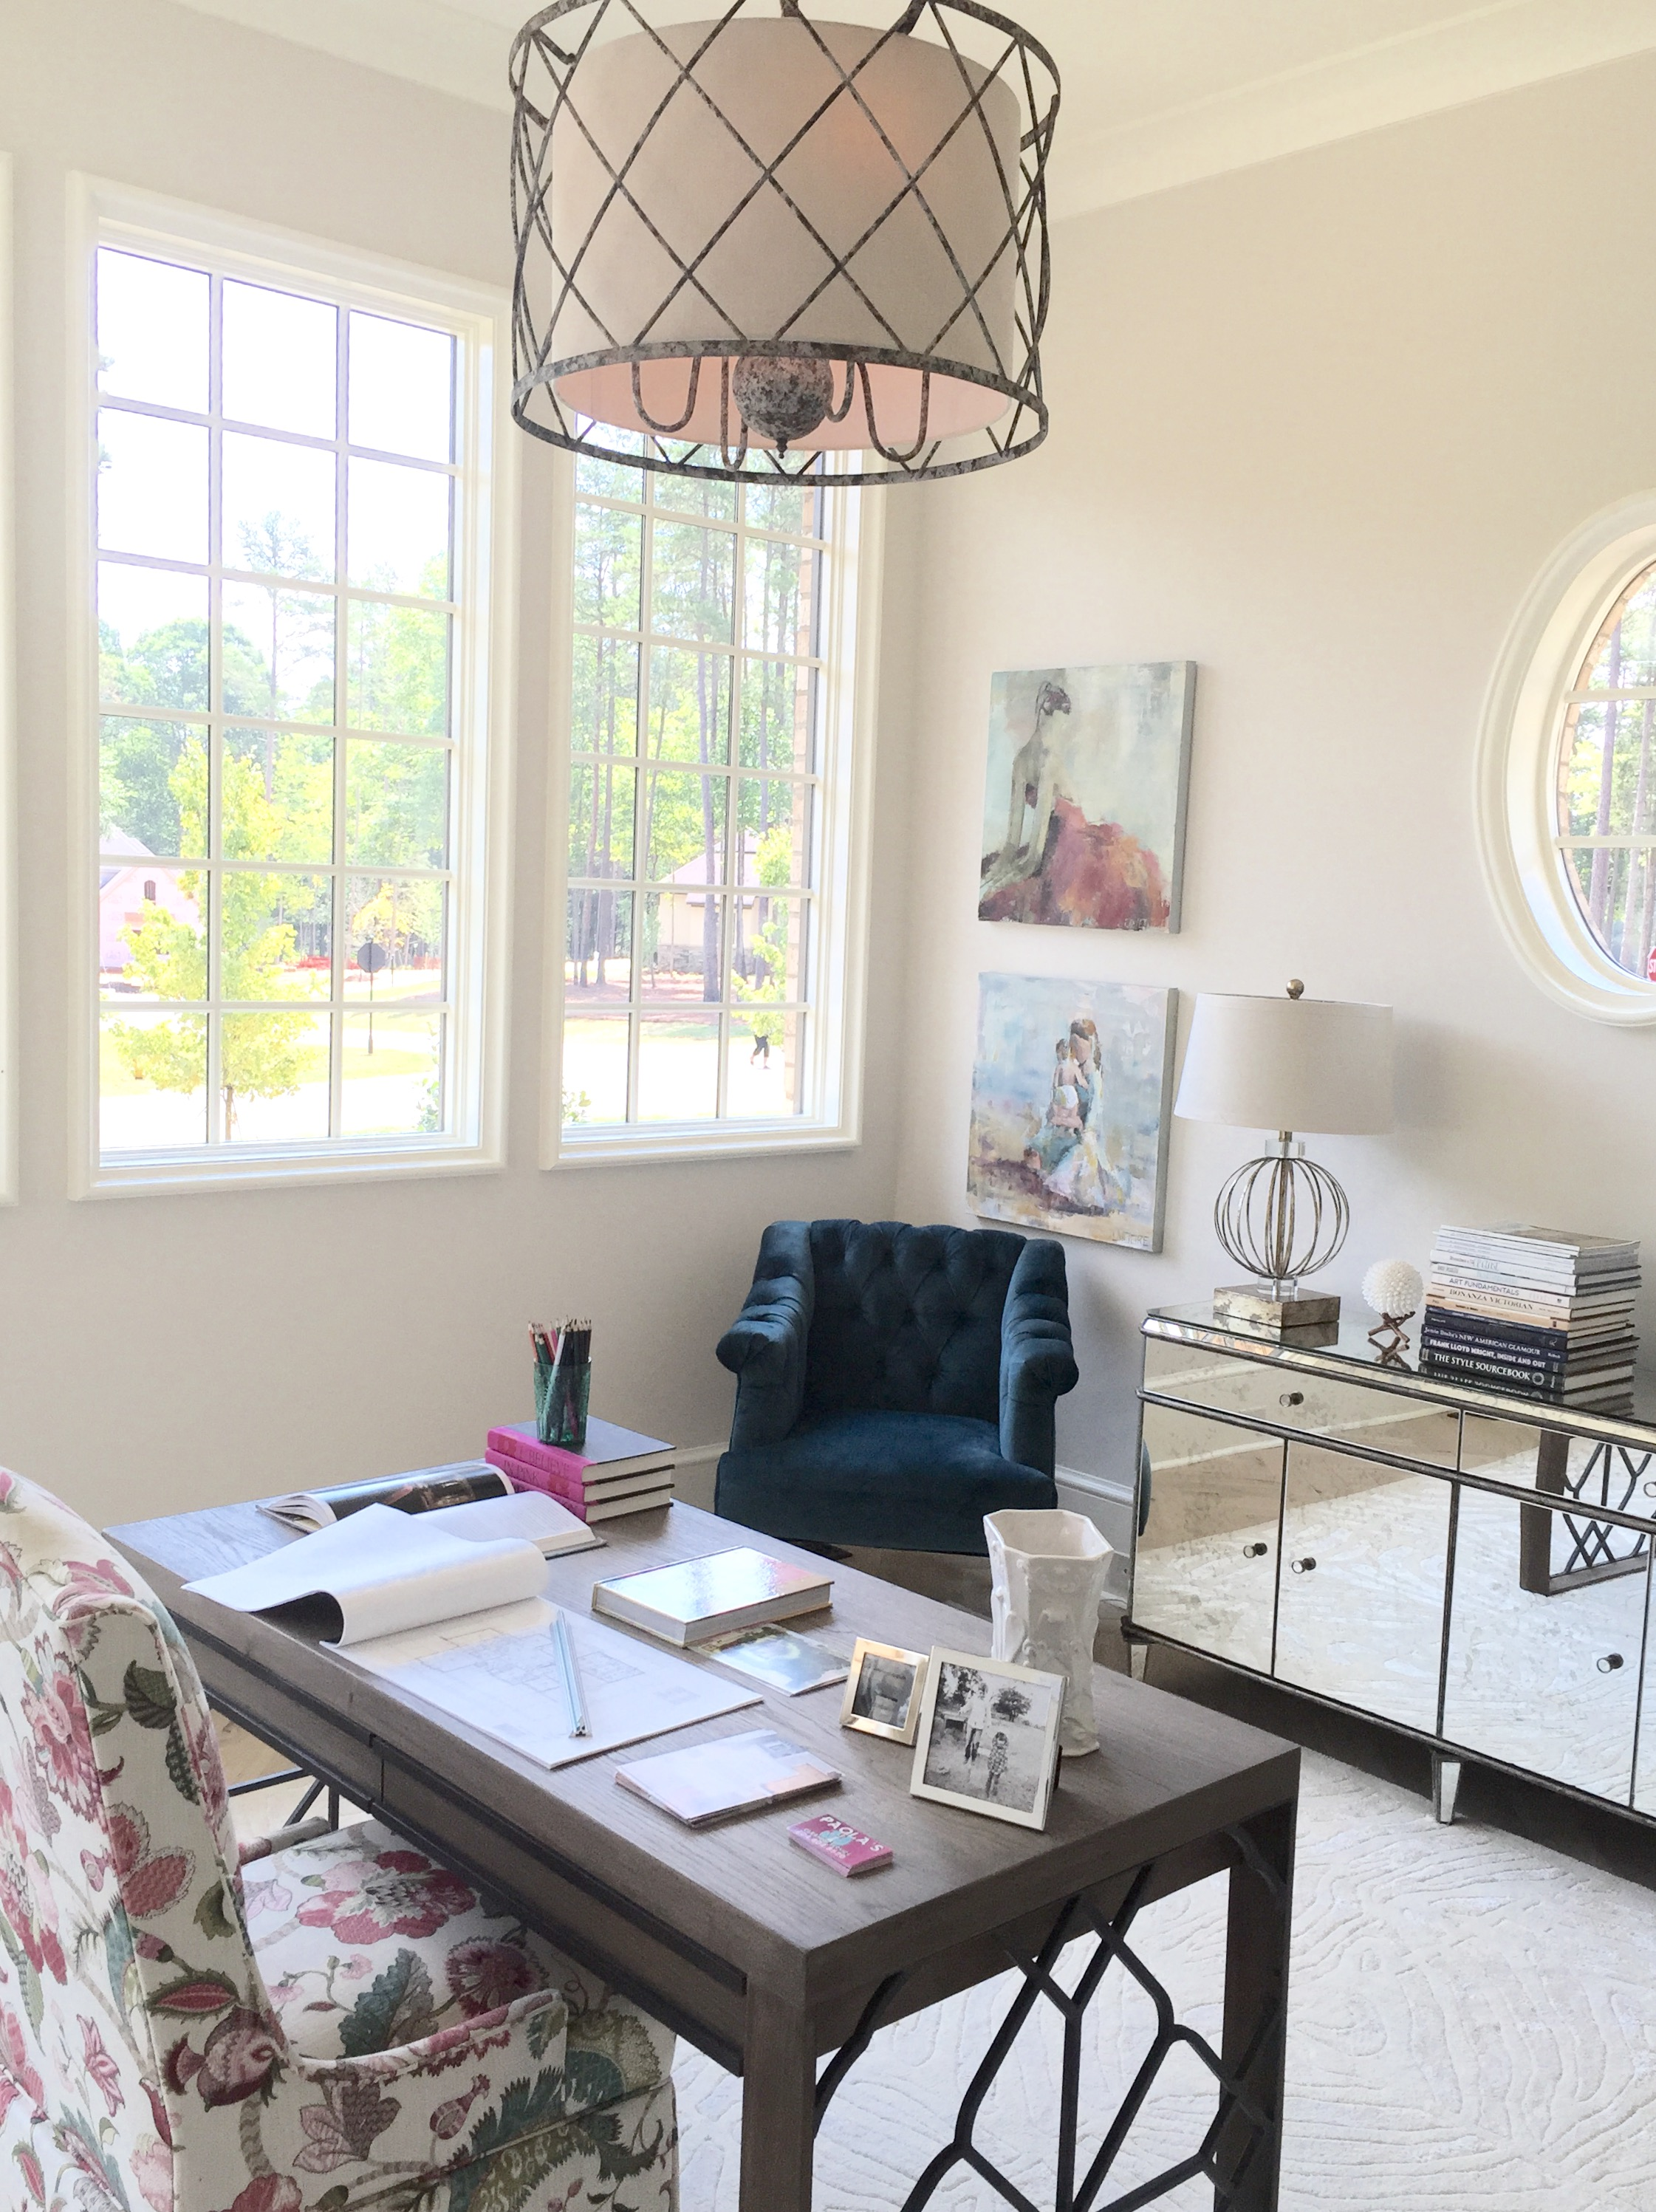 Placing the desk in the middle on the room provided for a surprisingly well-laid out space. Pops of pink and dark teal made for a exciting work space.